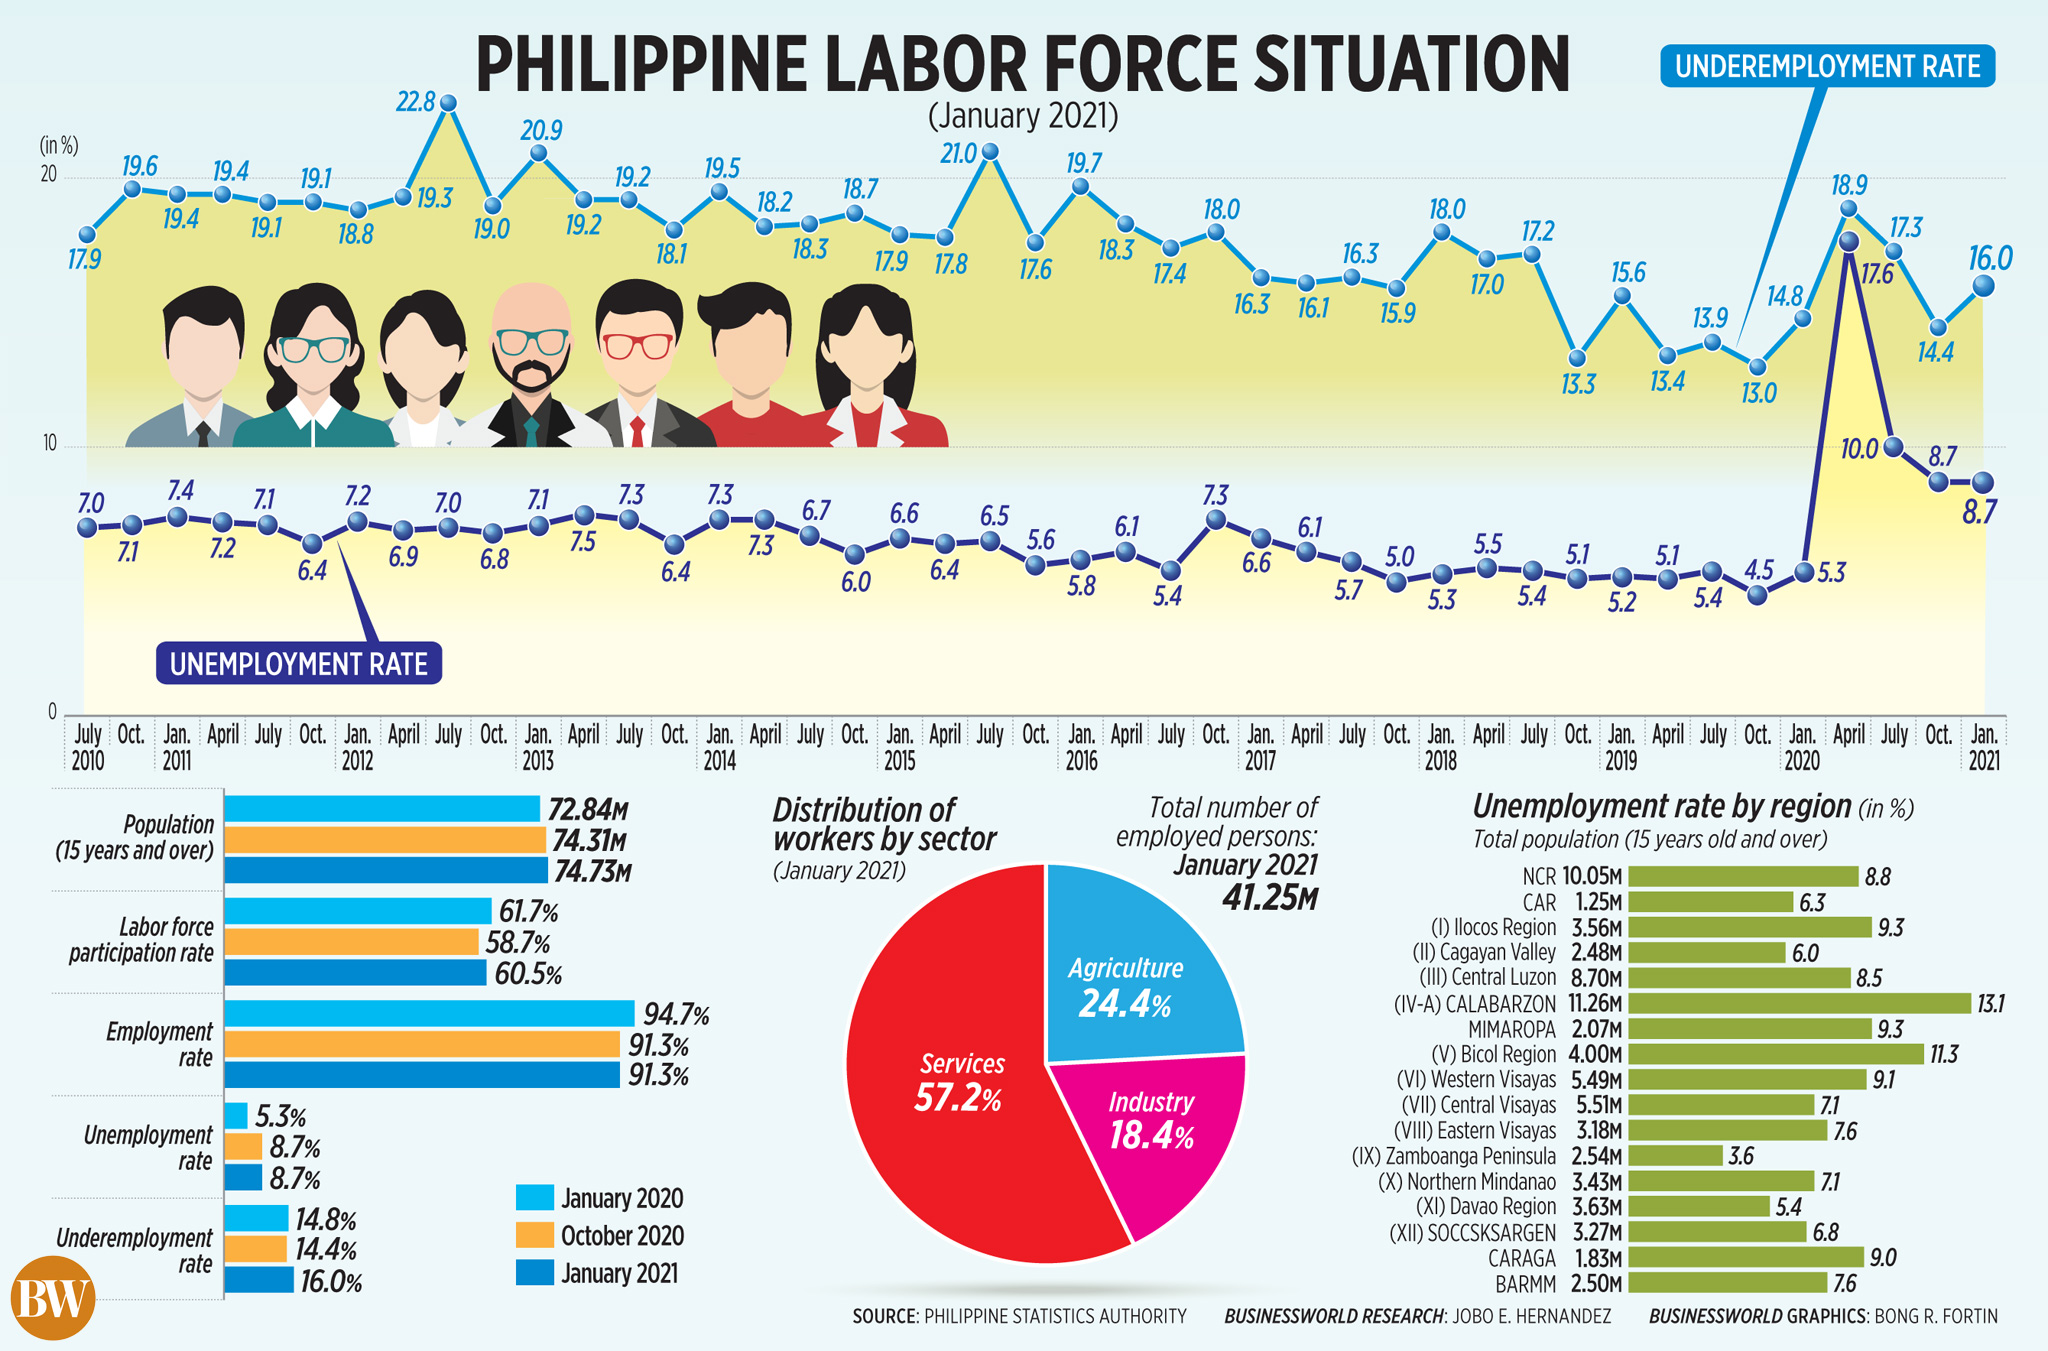 PHL labor force situation (Jan. 2021)